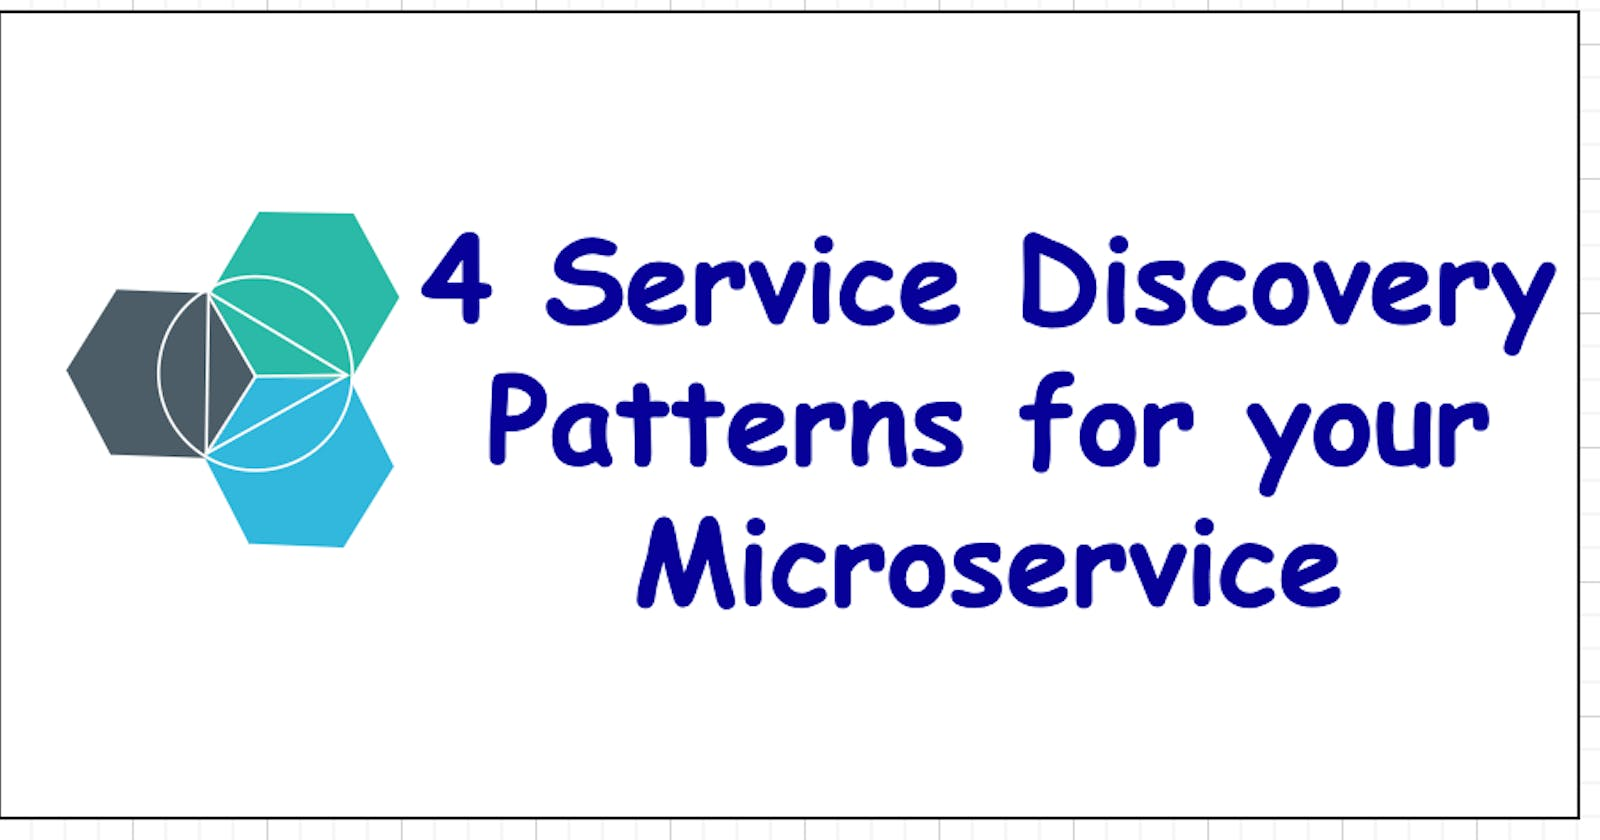 4 Service Discovery Patterns for your Microservice